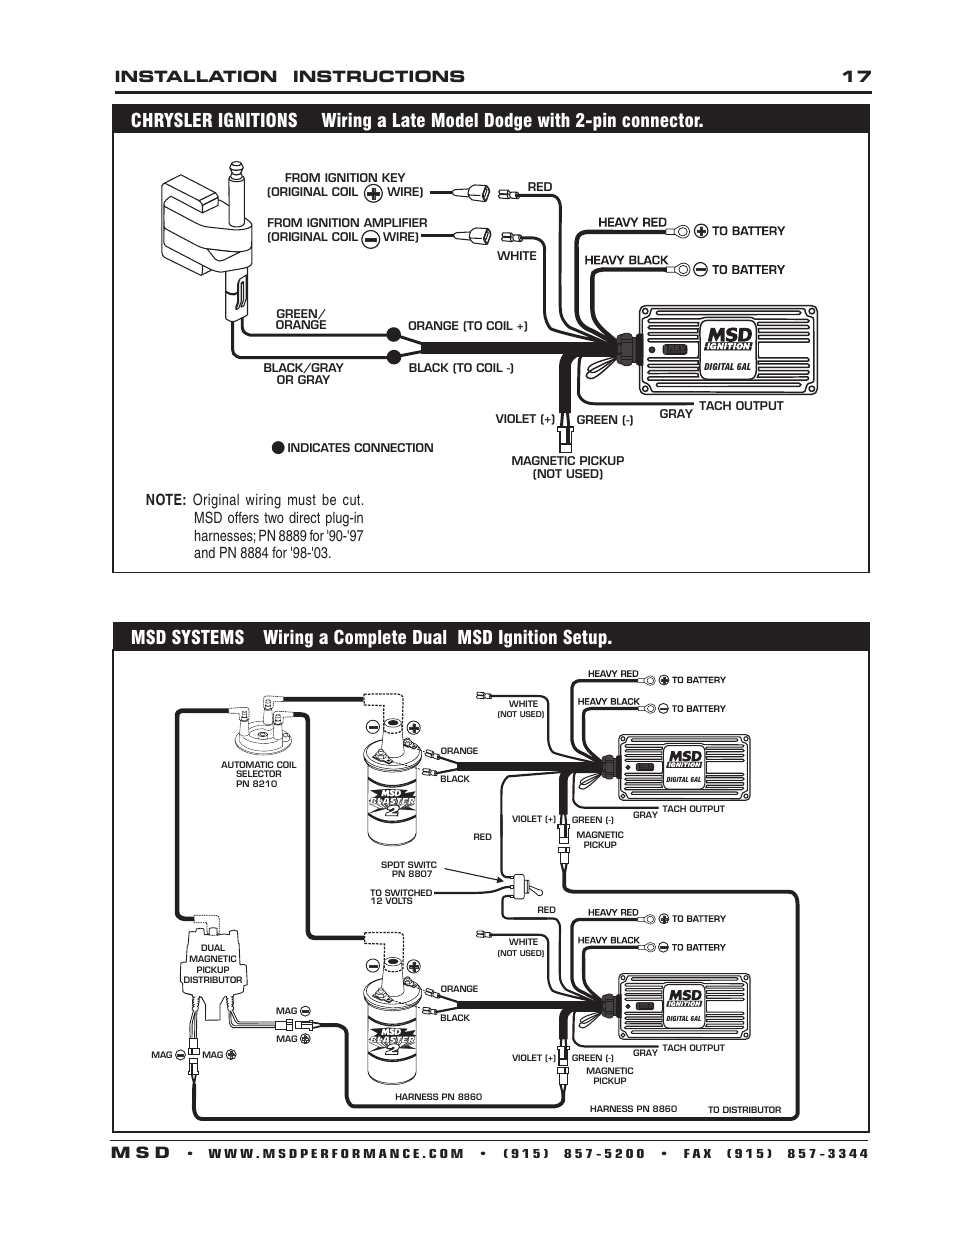 Msd Ignition Systems Wiring Diagrams Msd Electronic Ignition Wiring